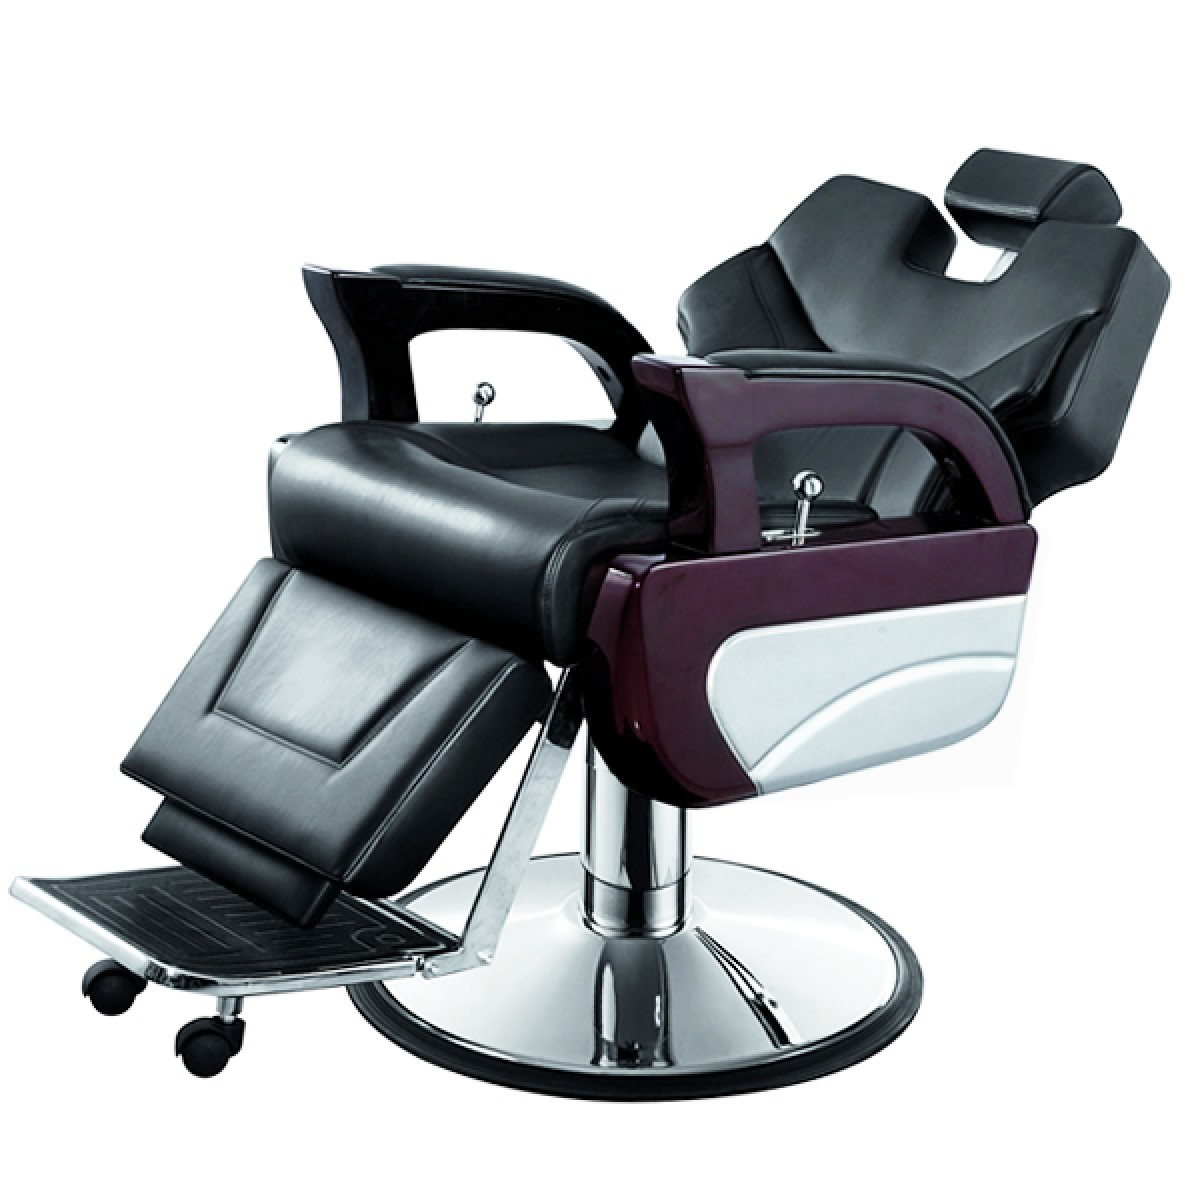 Quot Augusto Quot Barber Shop Chair In Khaki